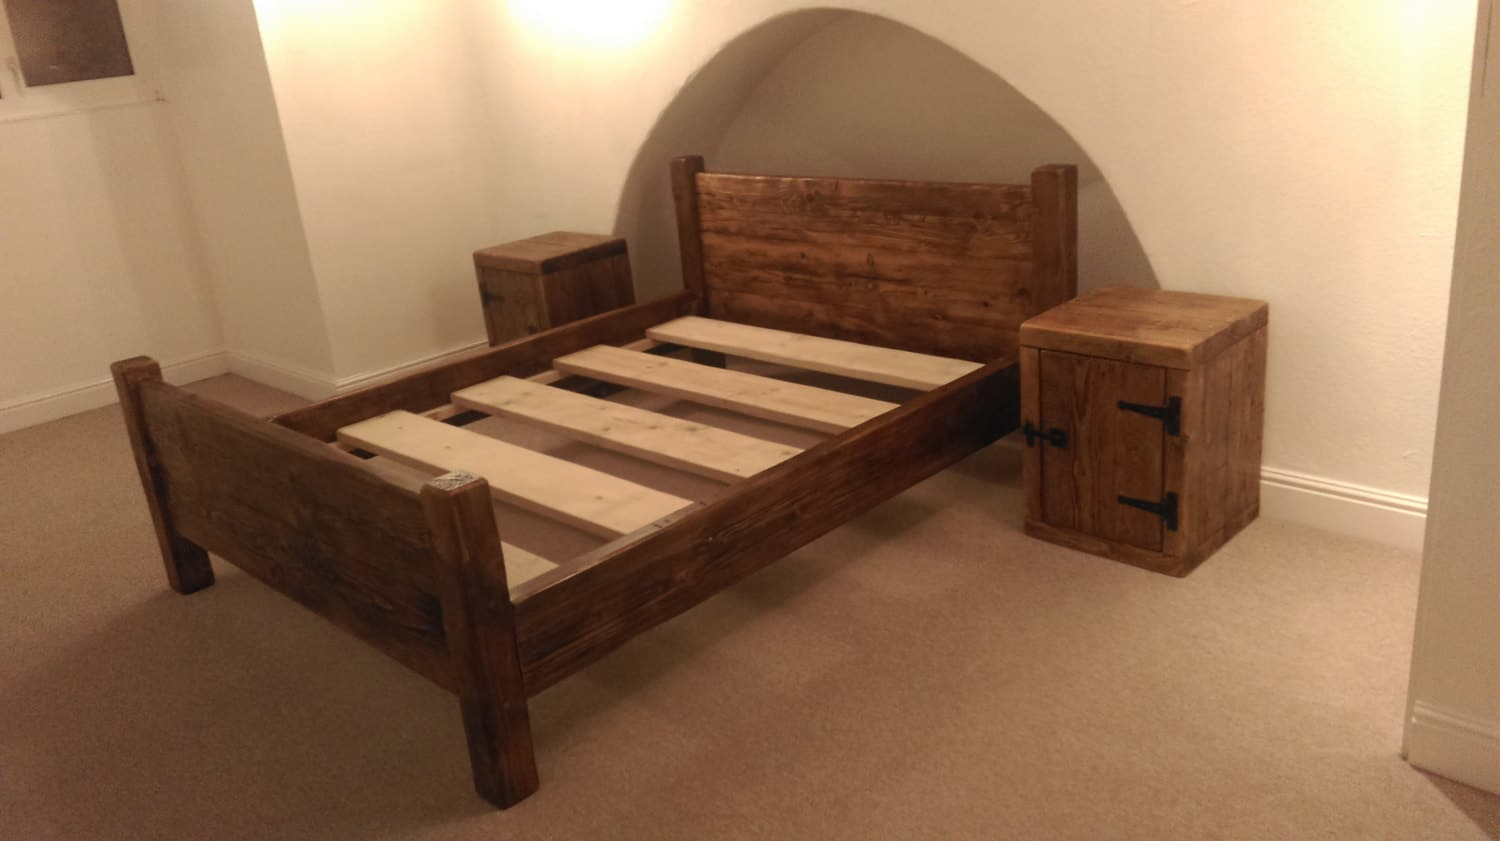 Dorset Chunky Rustic Solid Pine Bed Frame With Headboard